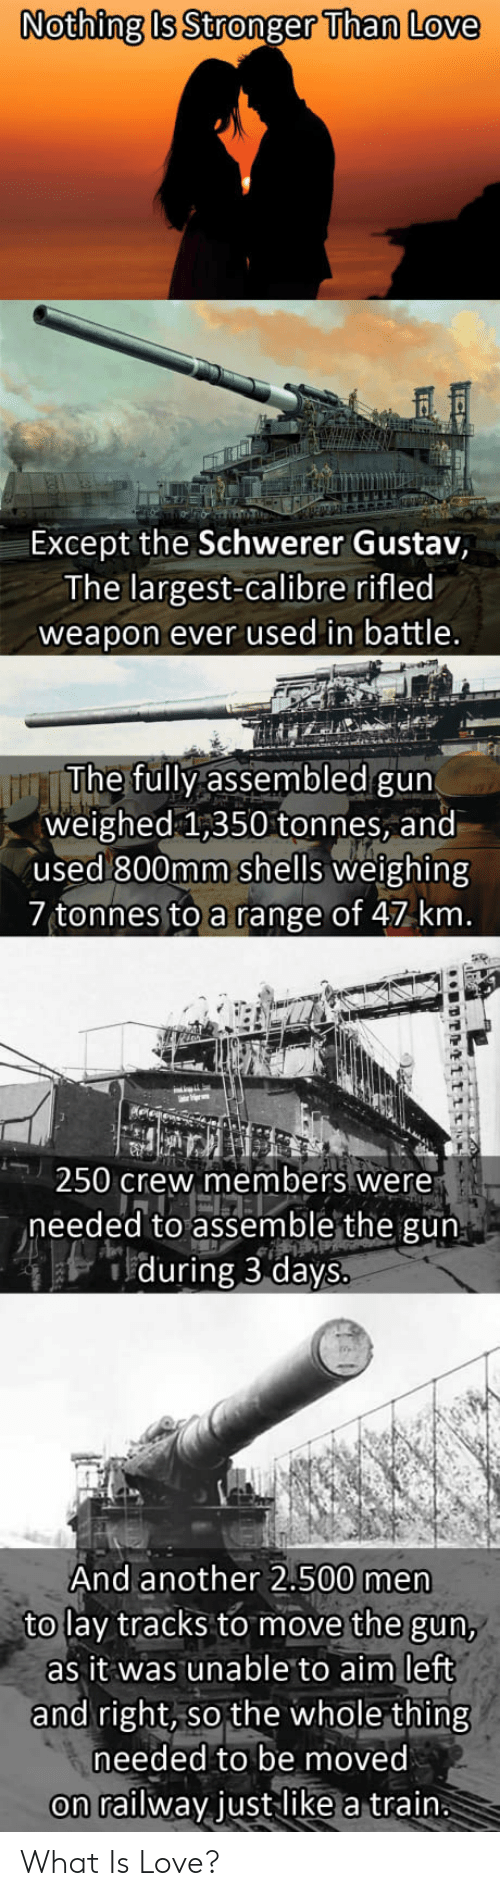 left-and-right: Nothing b Stronger Than Love  Except the Schwerer Gustav,  The largest-calibre rifled  weapon ever used in battle  The fully assembled gun  weighed 1,350 tonnes, and  used 800mm shells weighing  7 tonnes to a range of 47 km  250 crew members were  needed to assemble the gun  during 3 days.  And another 2.500 men  to lay tracks to move the gun,  as it was unable to aim left  and right, so the whole thing  needed to be moved  on railway justlike a train What Is Love?